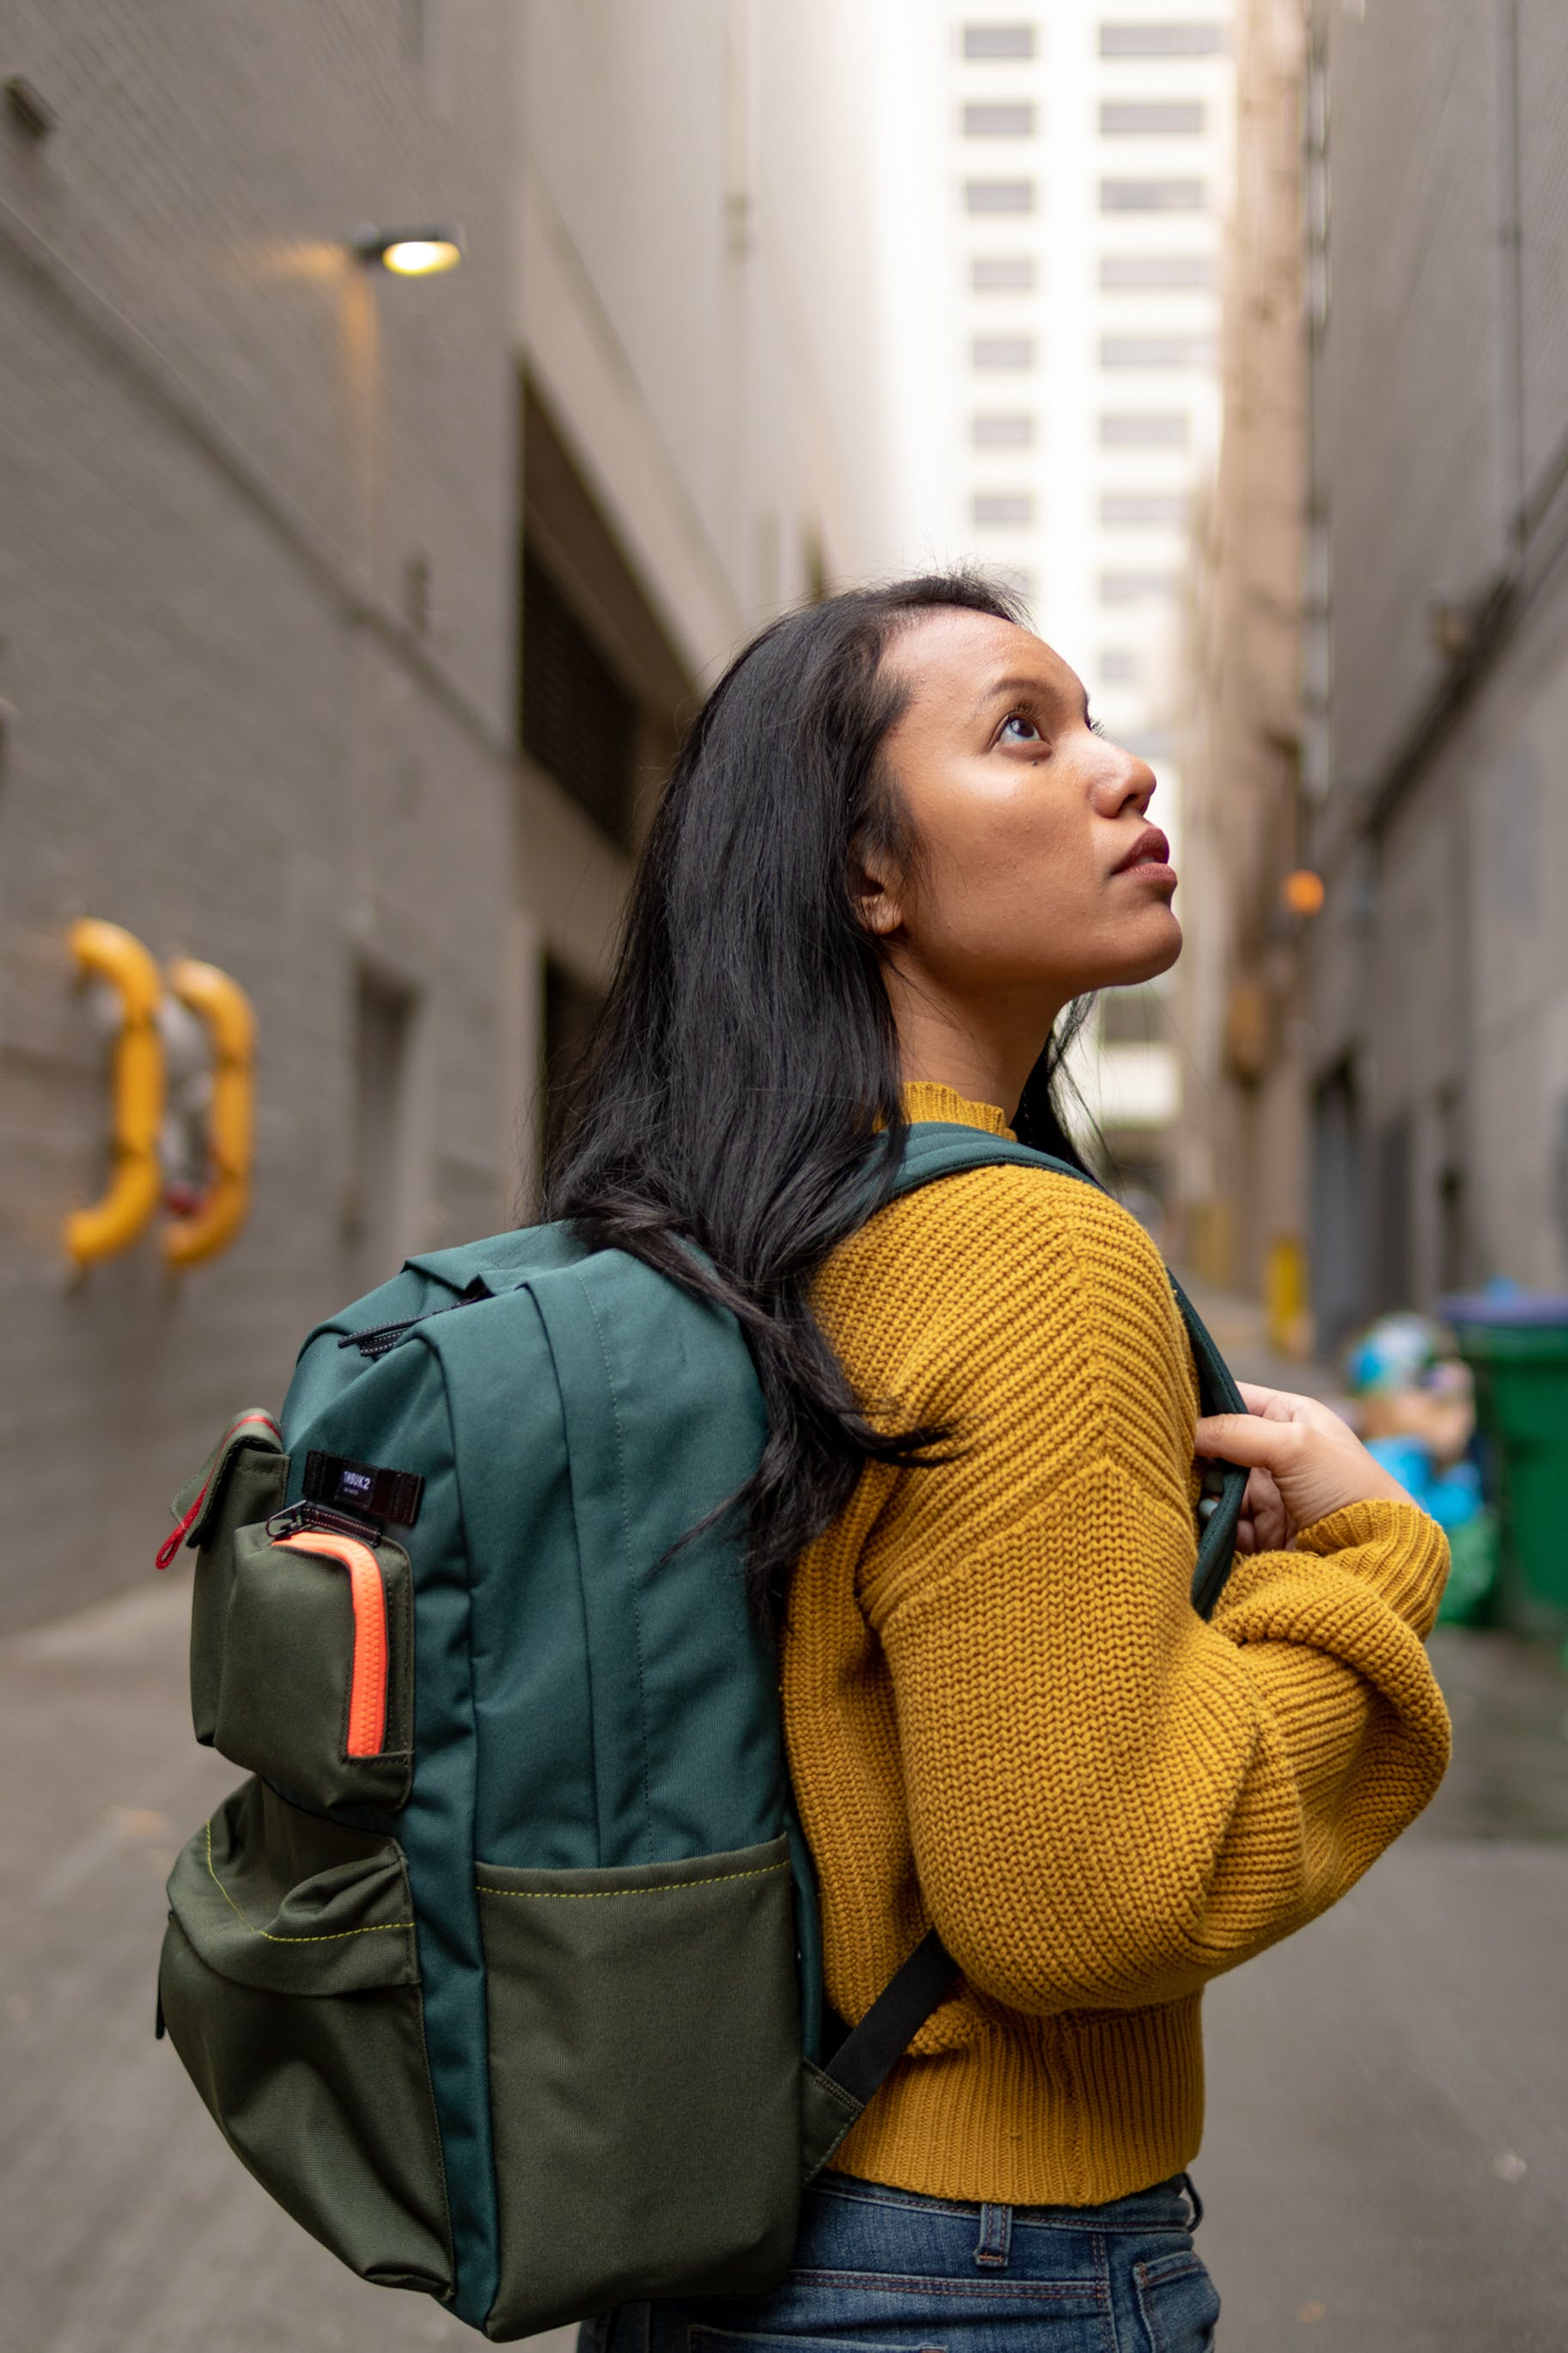 Woman Wearing Green Backpack